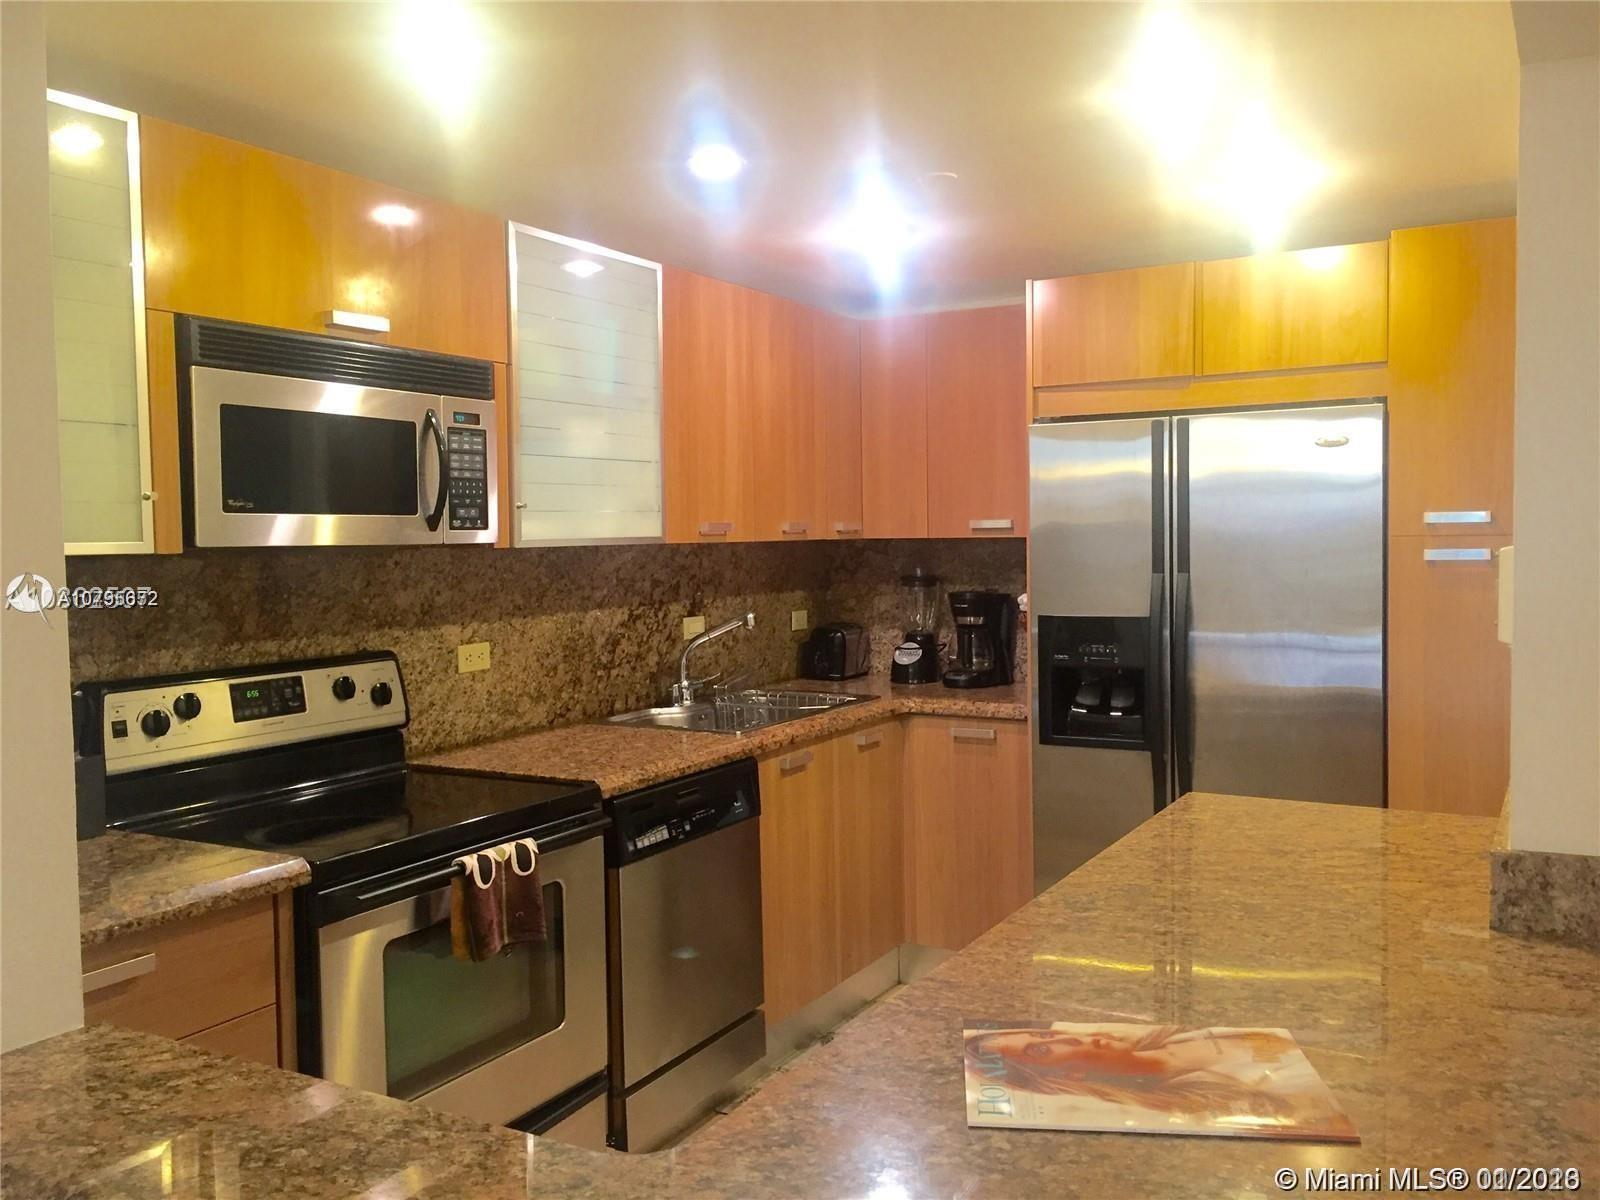 Beautifully remodeled corner unit with an open layout featuring a new Kitchen, stainless steel appli